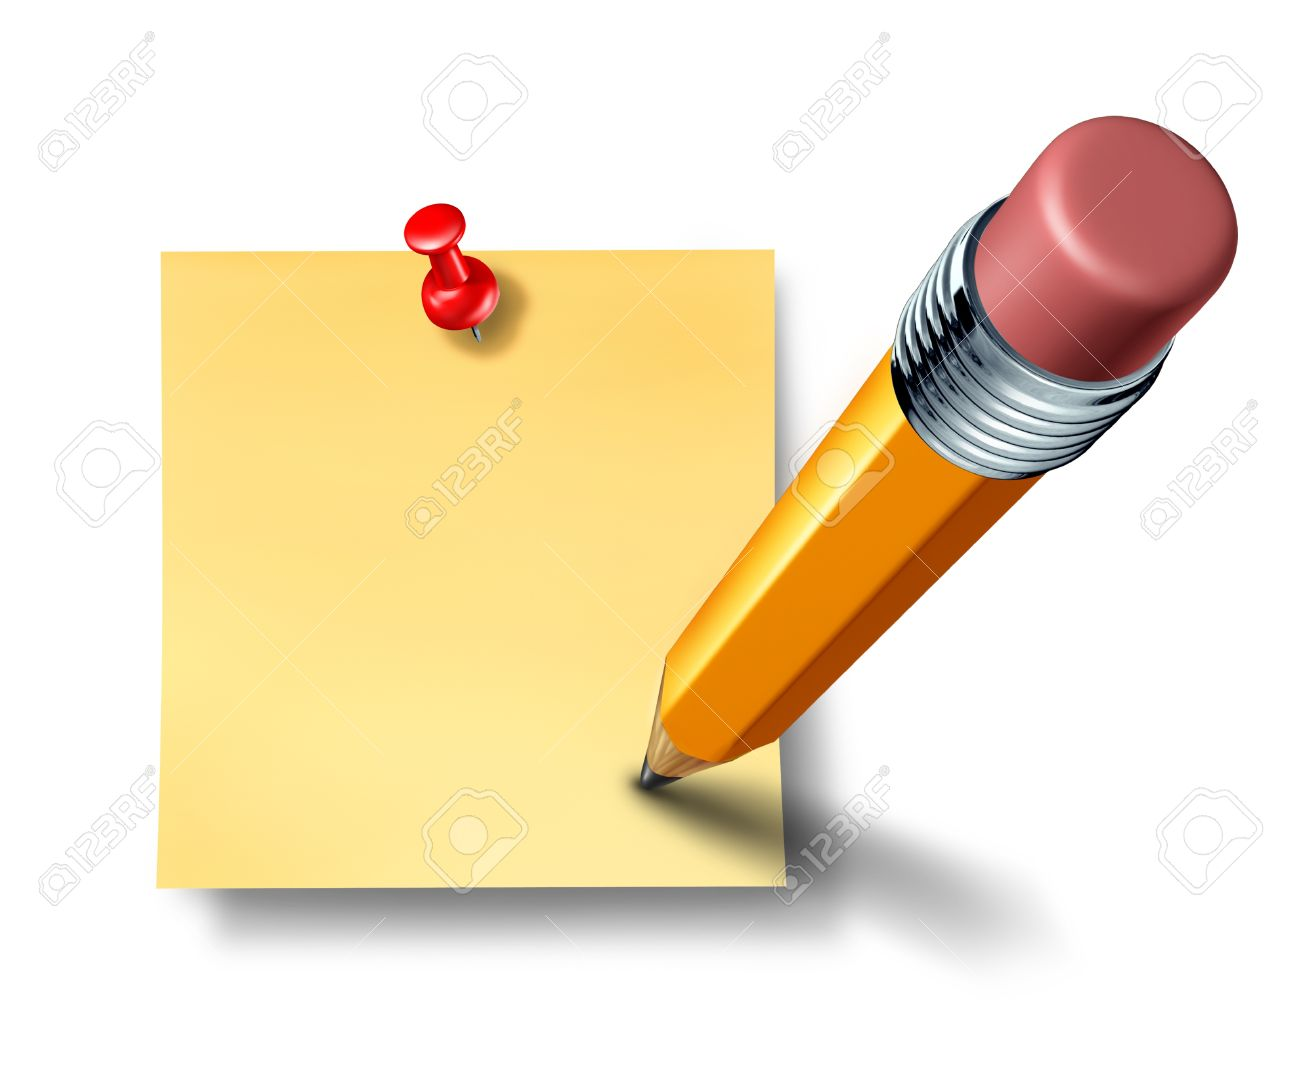 Writing an on a blank office note with a yellow pencil representing the symbol and concept of communication and marketing when promoting an important reminder or business message to employees and staff to educate and notify. Stock Photo - 11359694